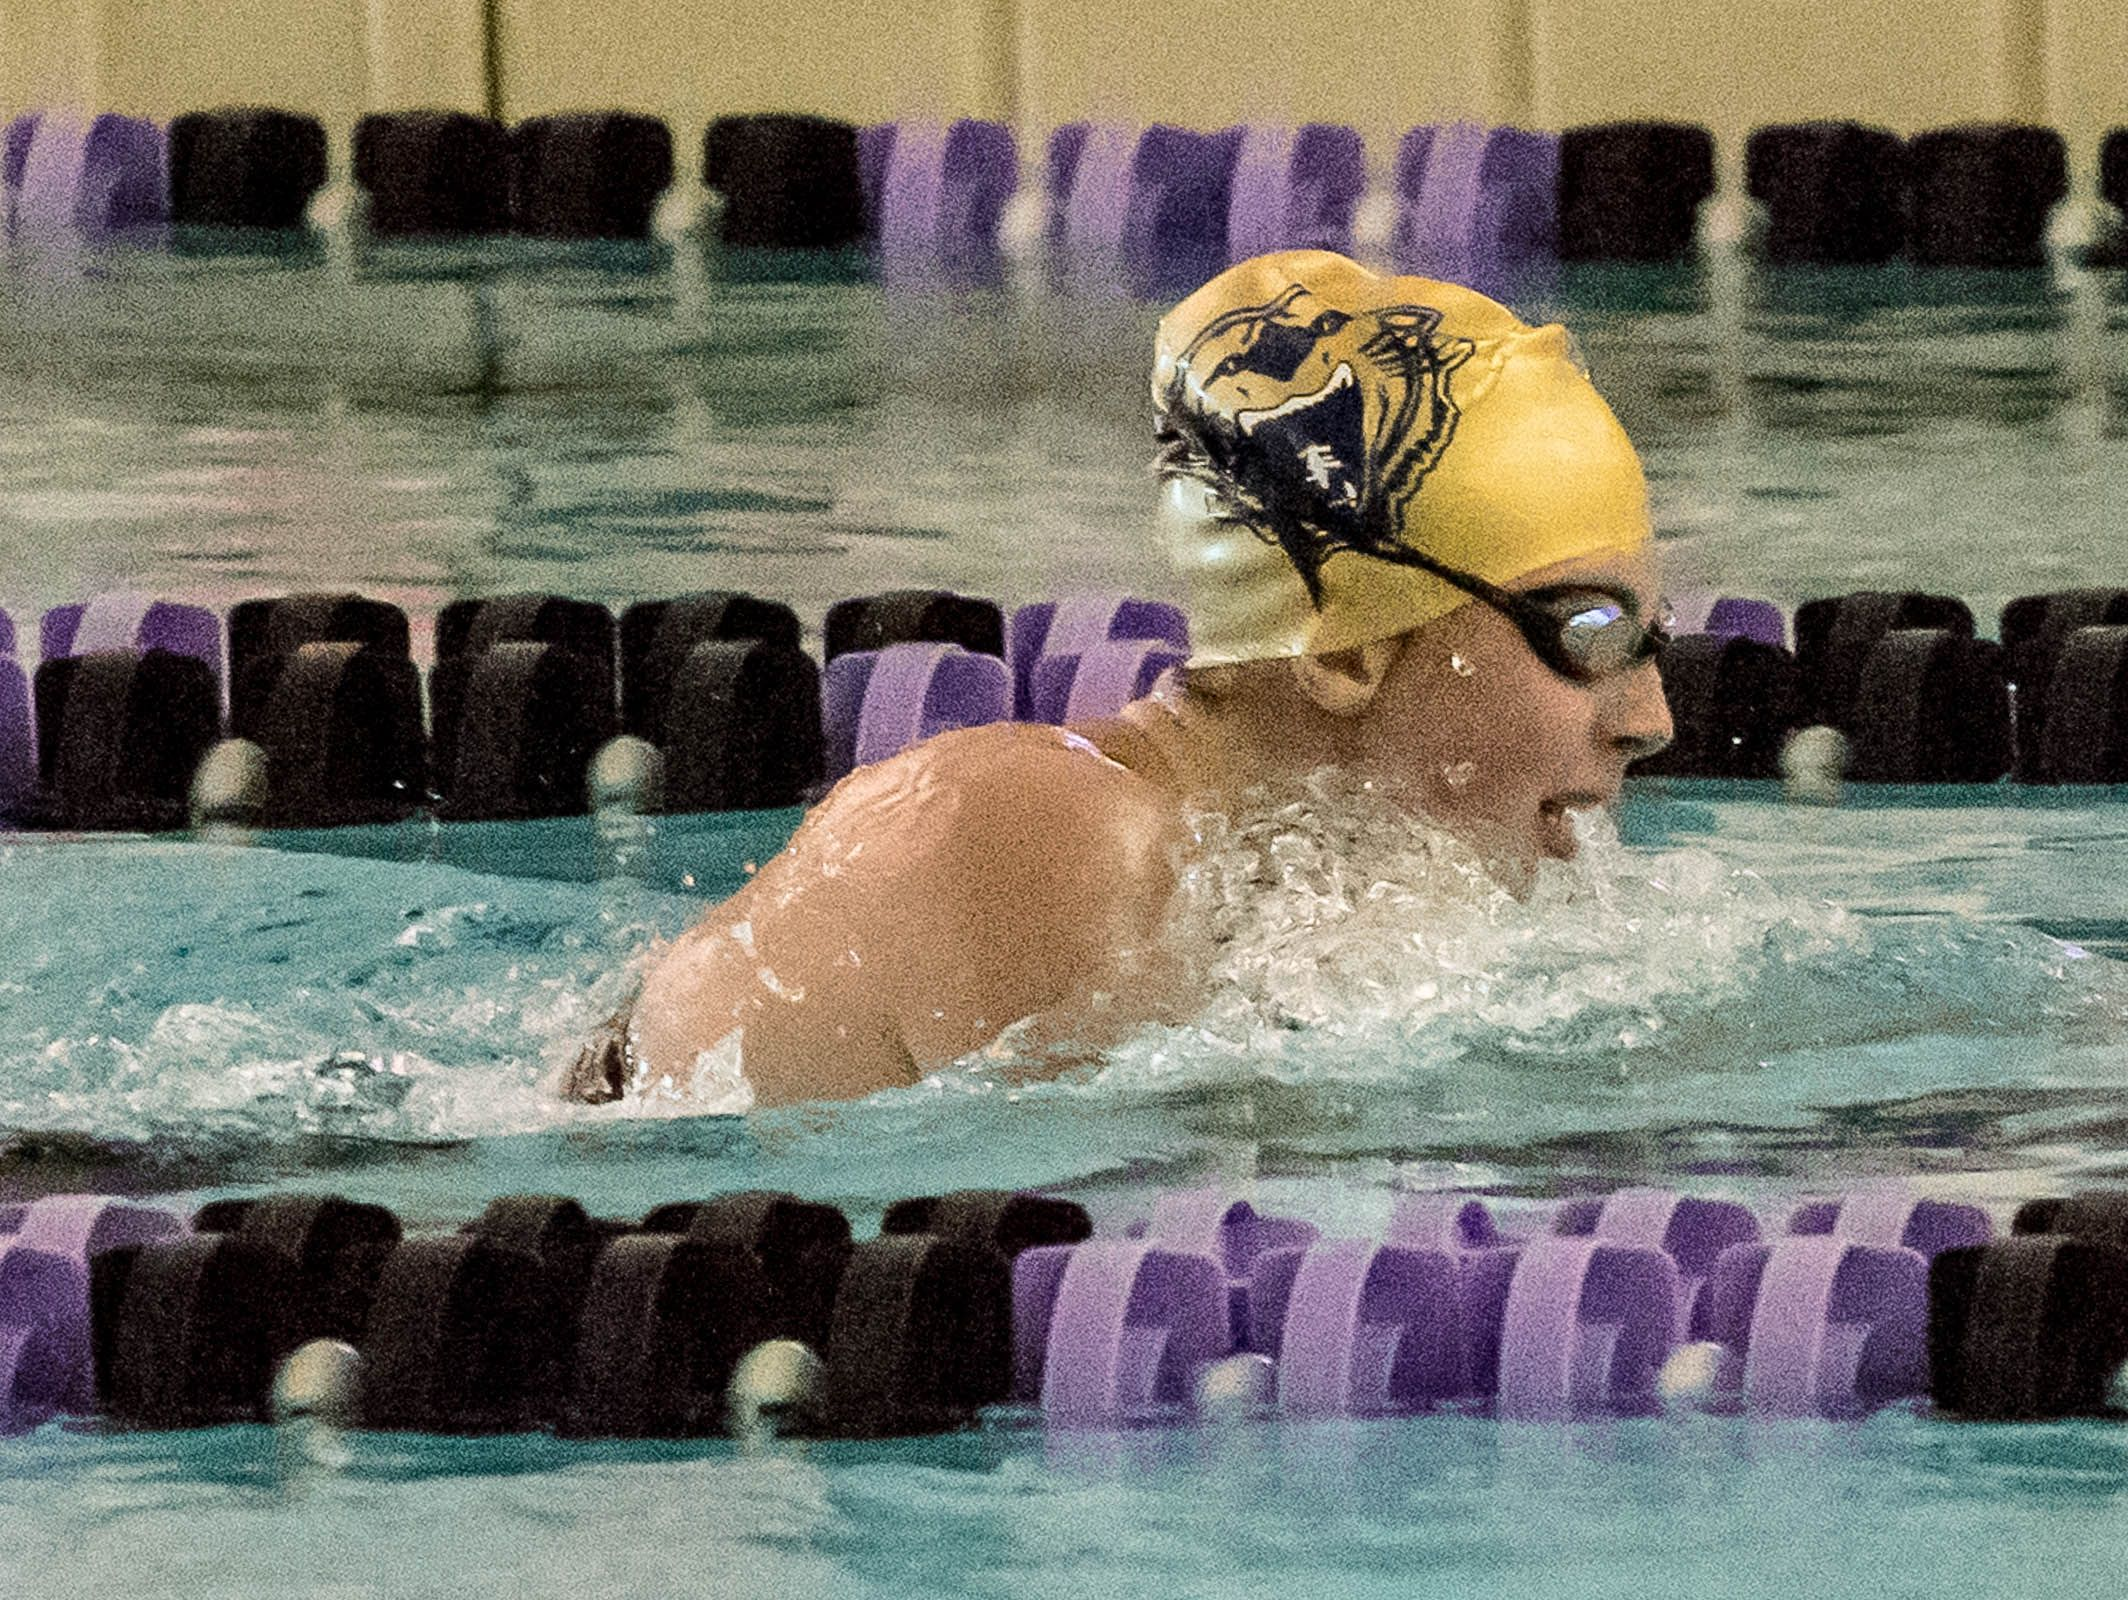 Battle Creek Central's Emily Meyers swims in the 200 Yard IM on the first day of the SMAC Girls 2016 Swim Meet on Friday.